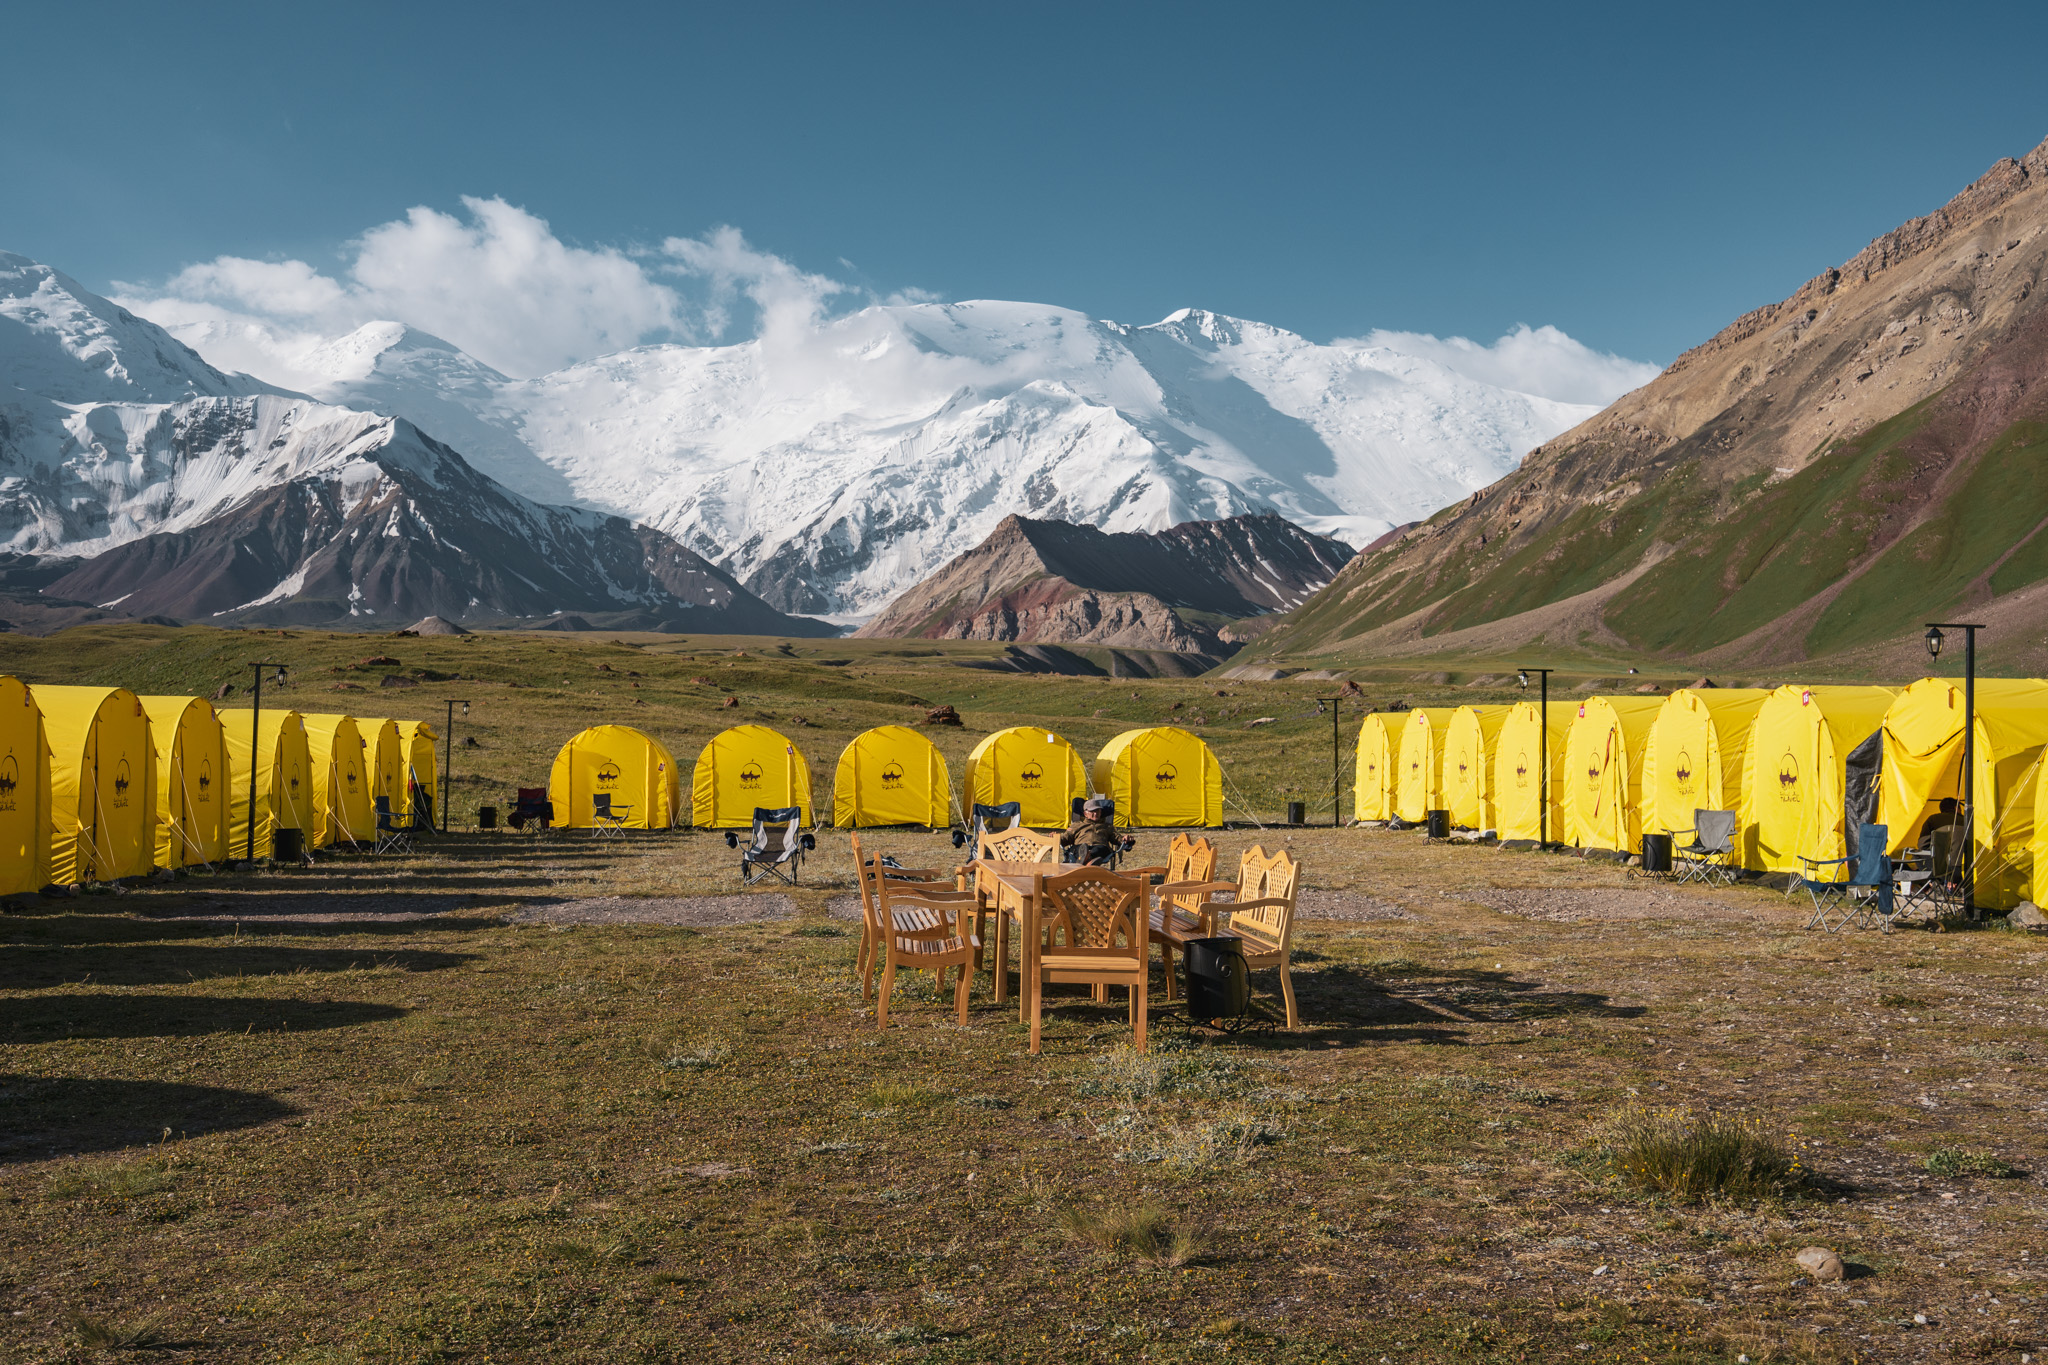 Sunny day at Lenin Peak Base Camp